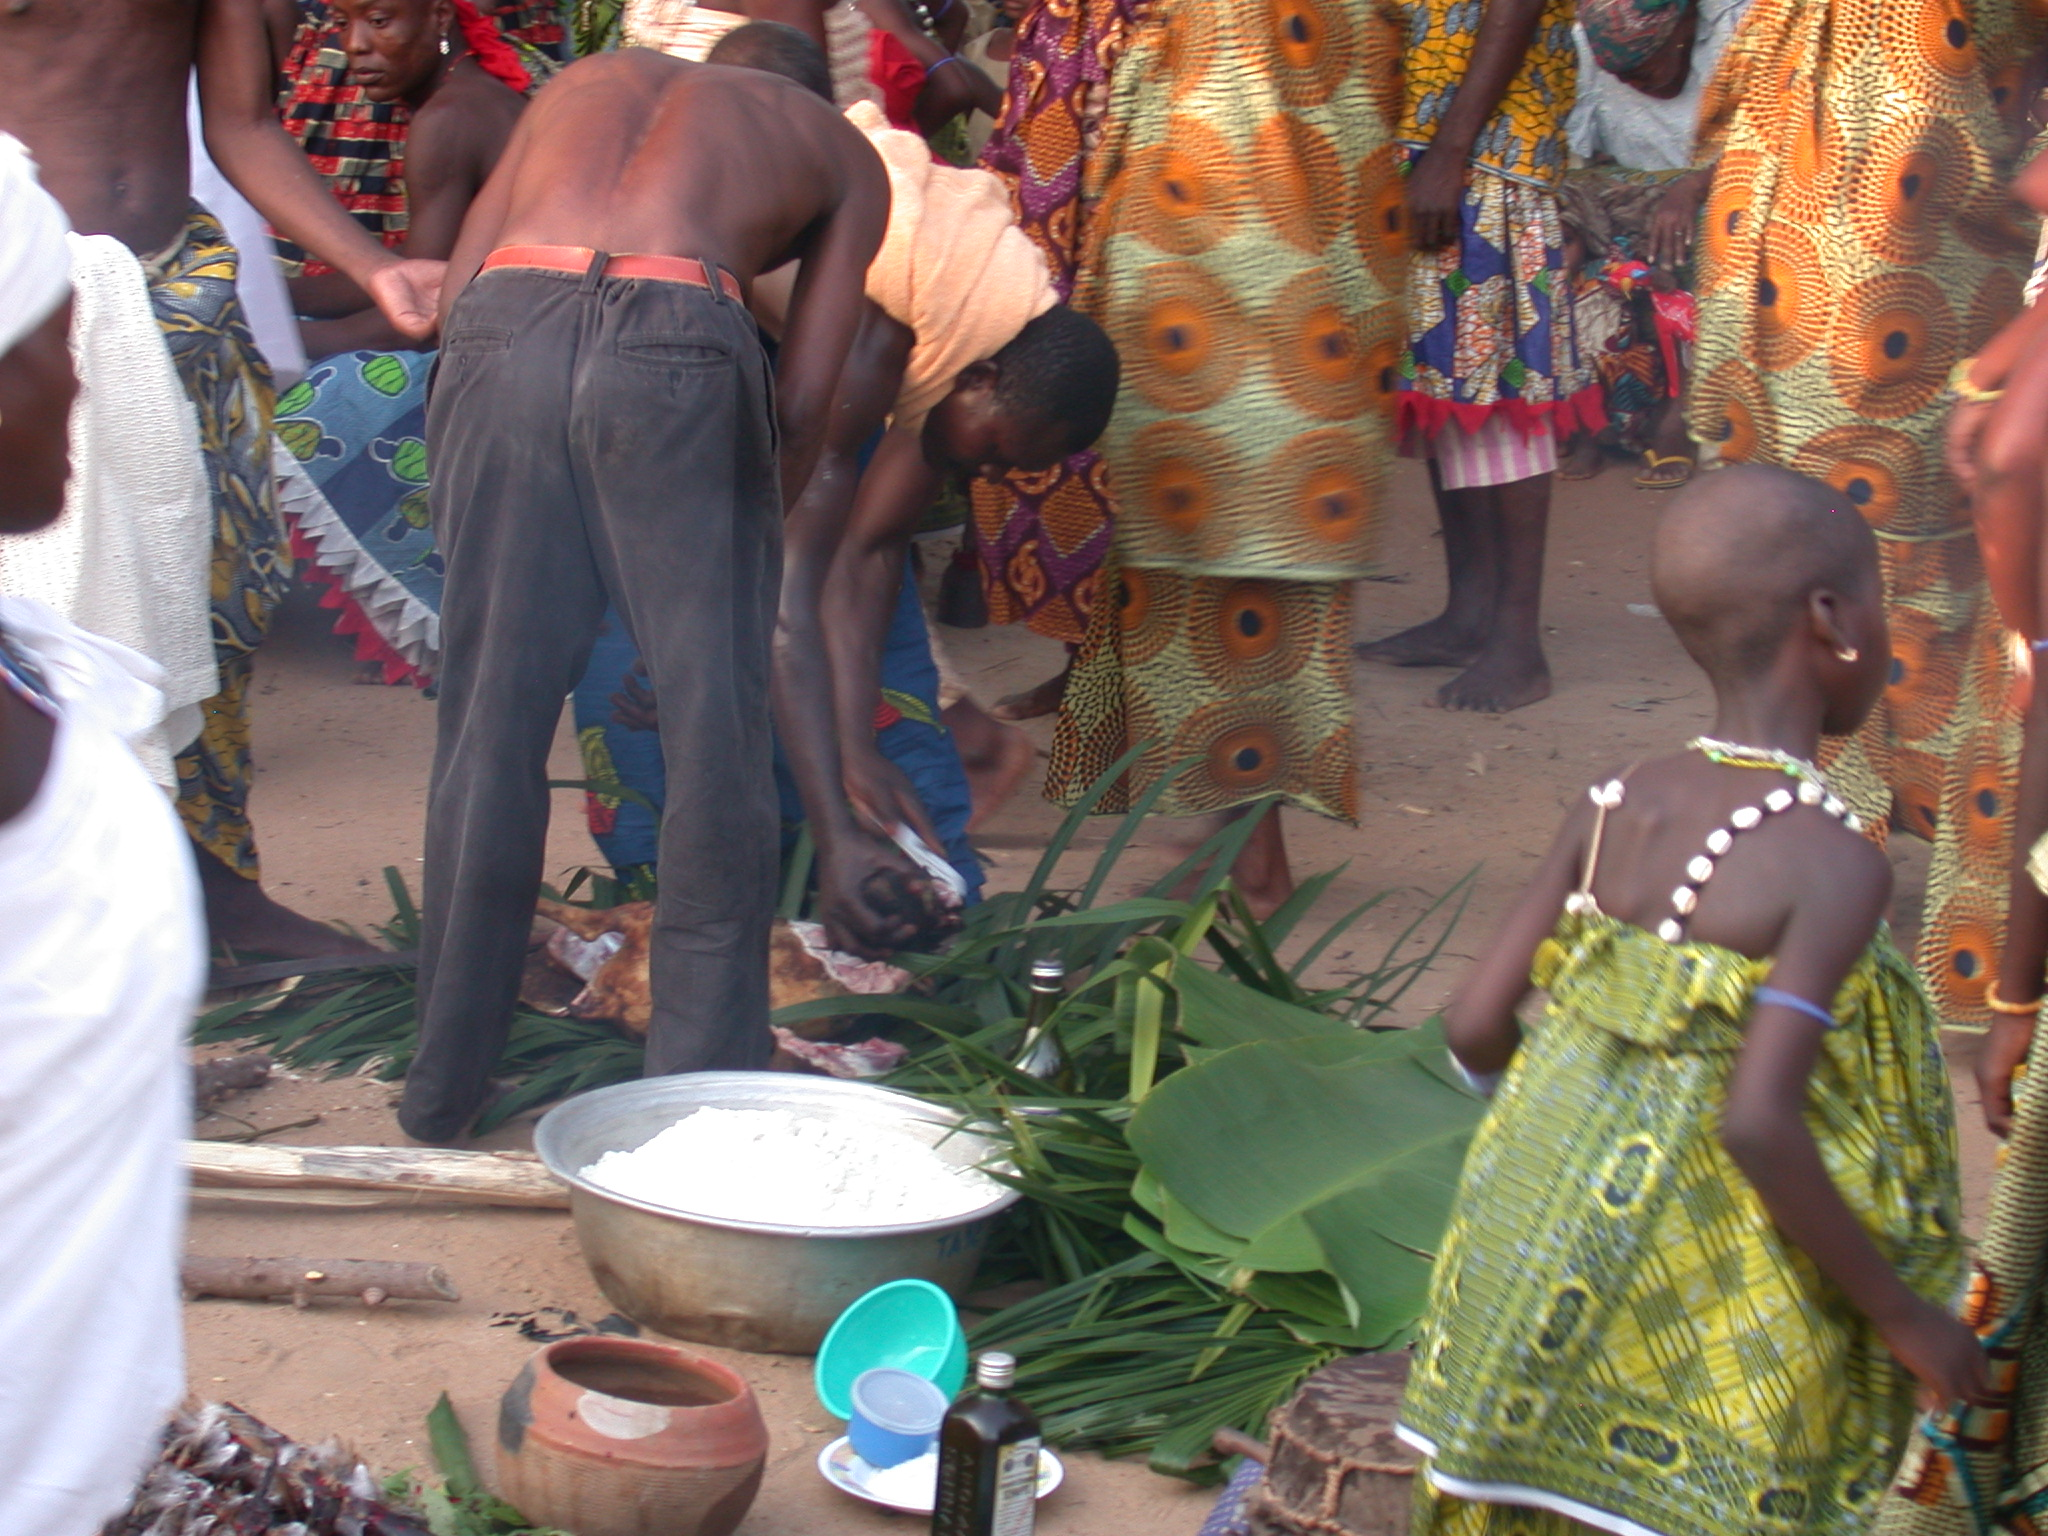 Further Preparation of the Sacrifice, Vodun Ritual, Ouidah, Benin